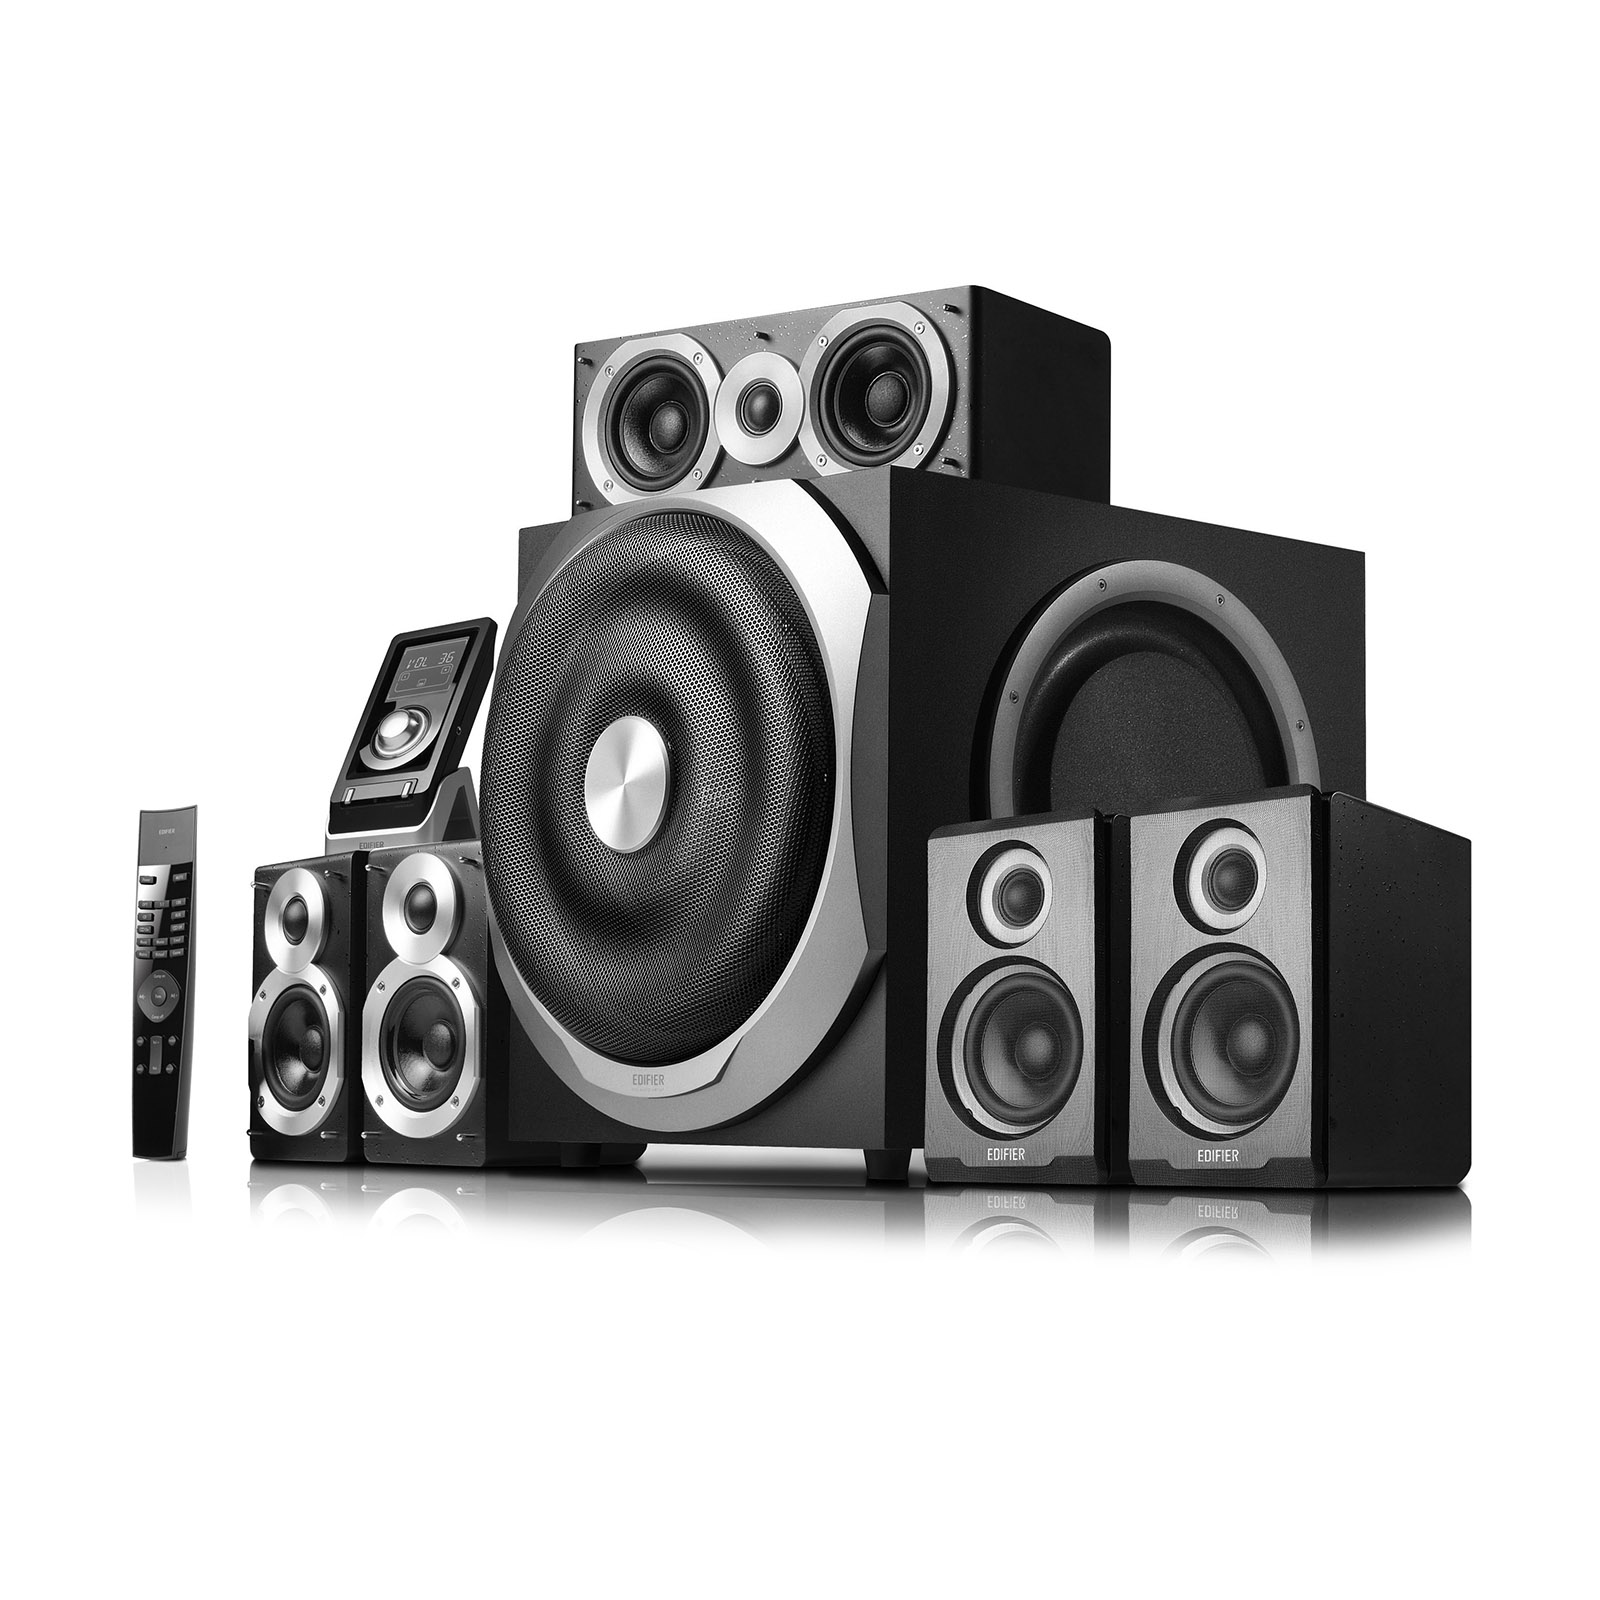 S760d 5 1 Surround Sound Speakers Subwoofer Edifier Usa